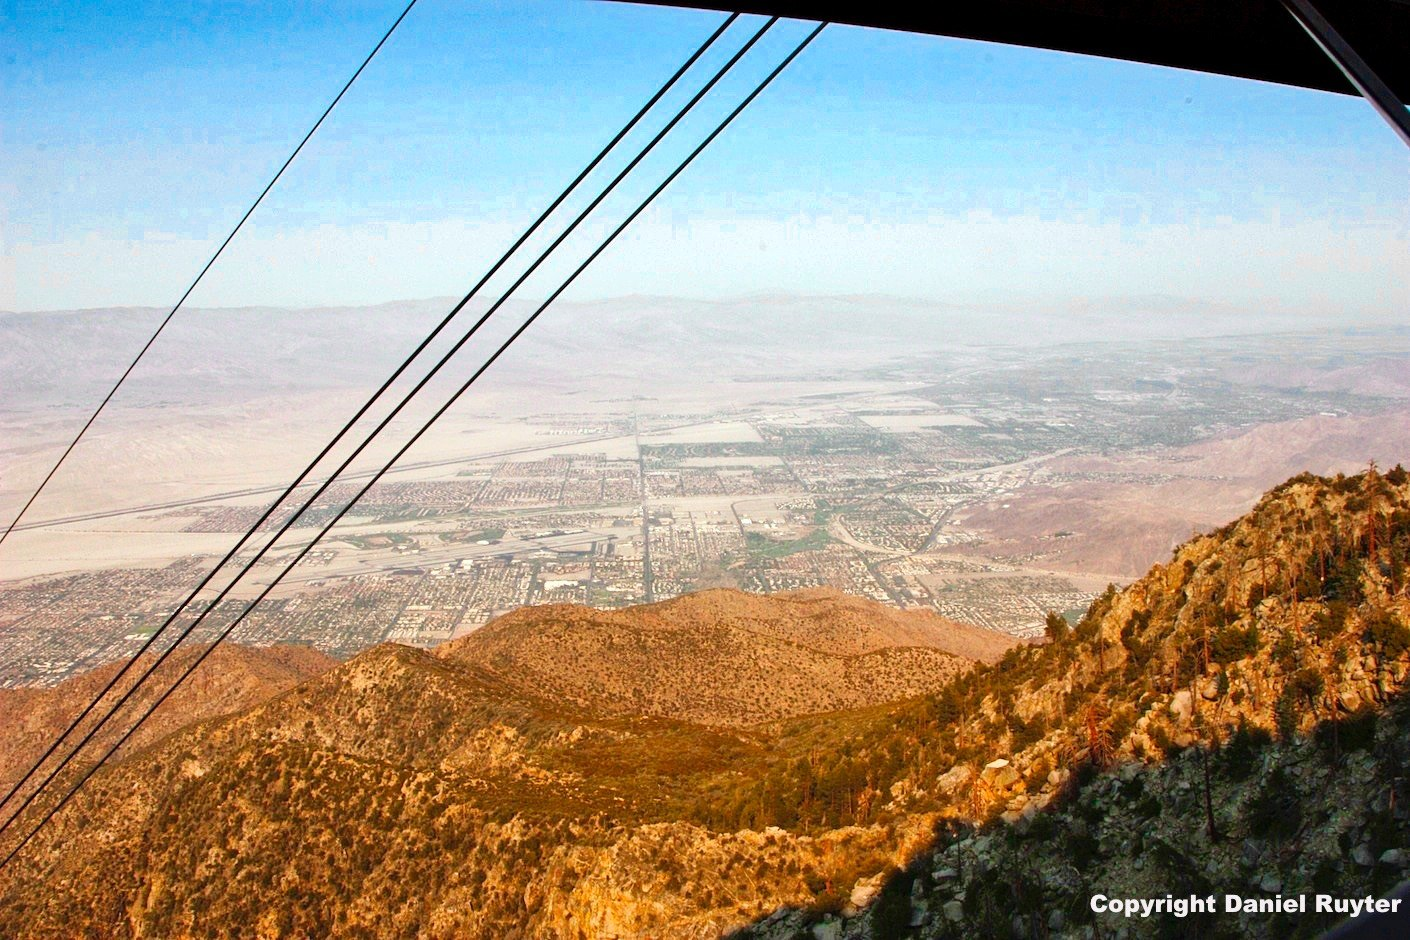 Palm Springs Aerial Tram Review With Tons of Photos